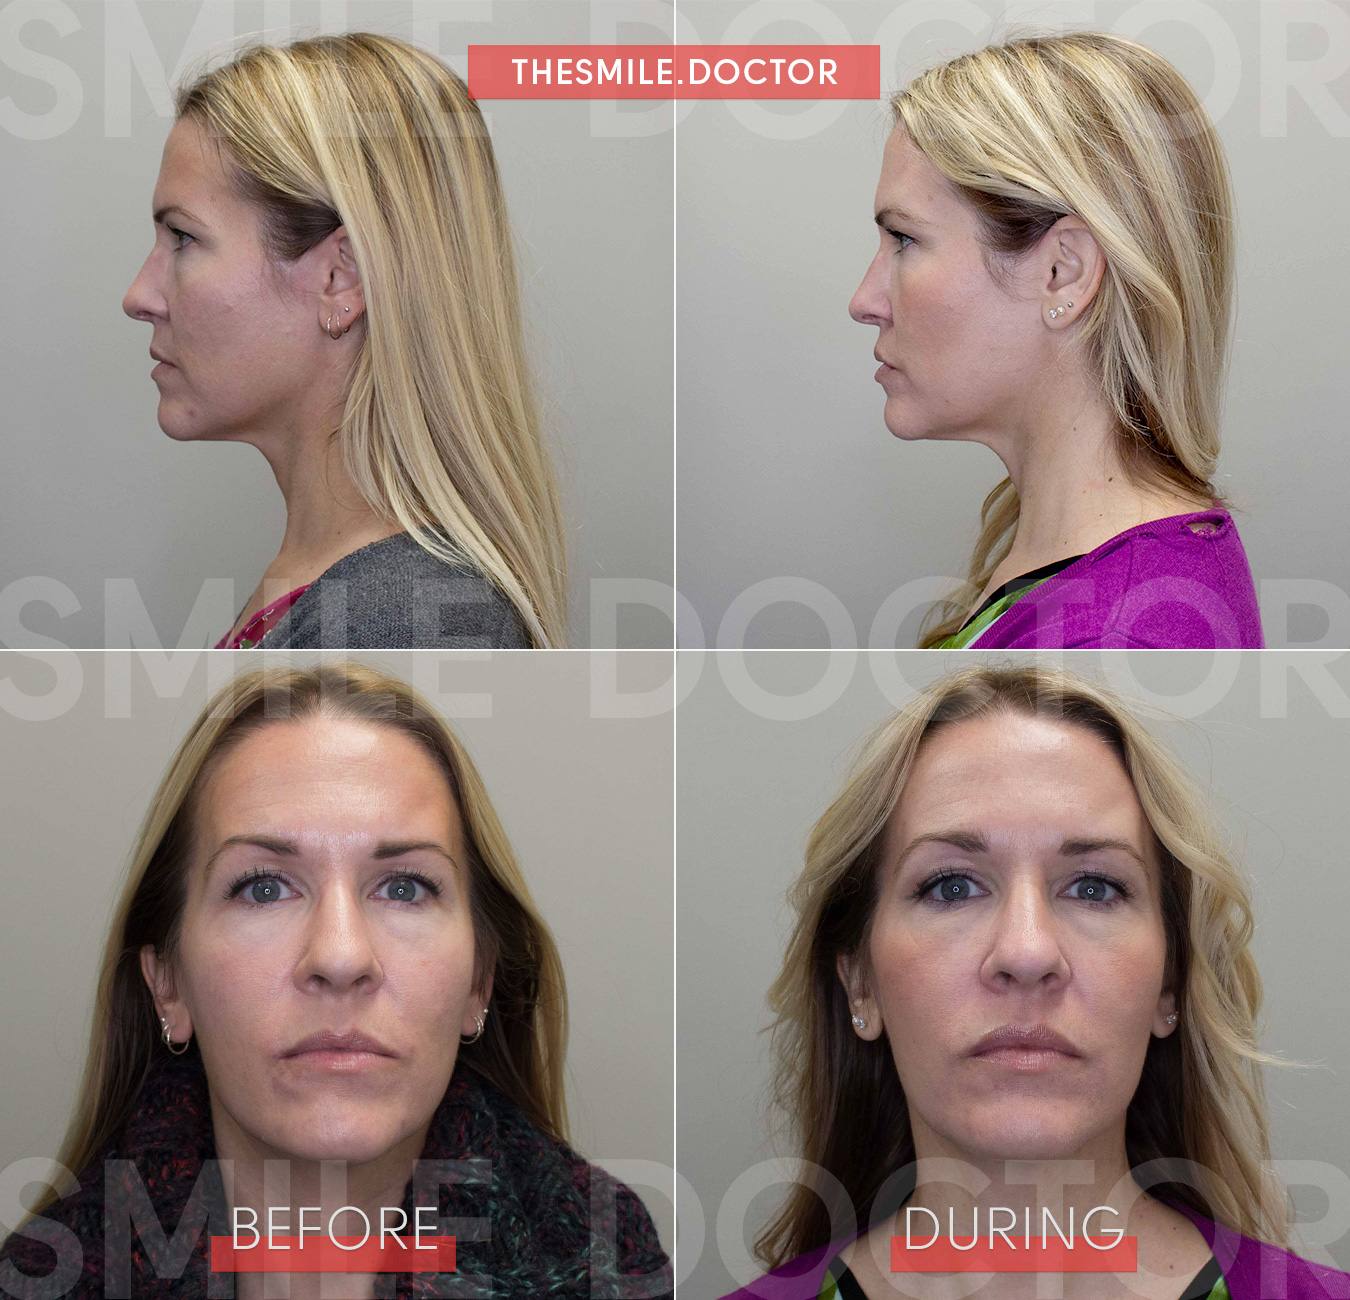 agga-growth-progress-with-amy-2-facial-growth-orthodontics.jpg